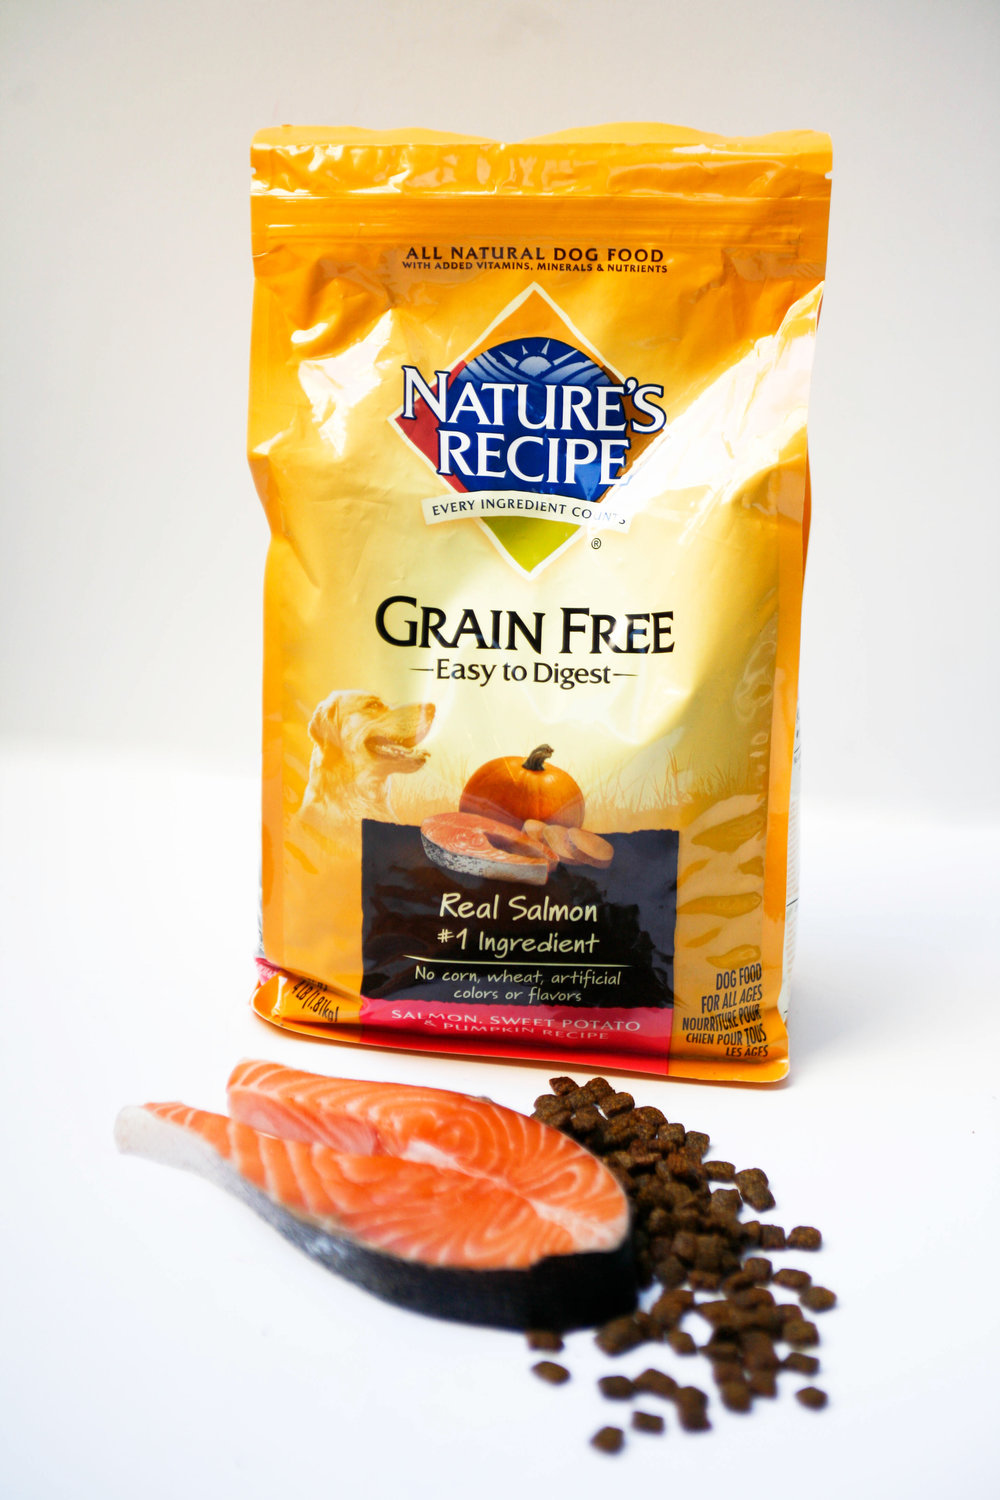 Maqs new fave natures recipe grain free salmon dog food recipe grain free salmon dog food a healthy nutritious easy to digest dry food maq has become completely addicted to look how adoringly patient he forumfinder Gallery